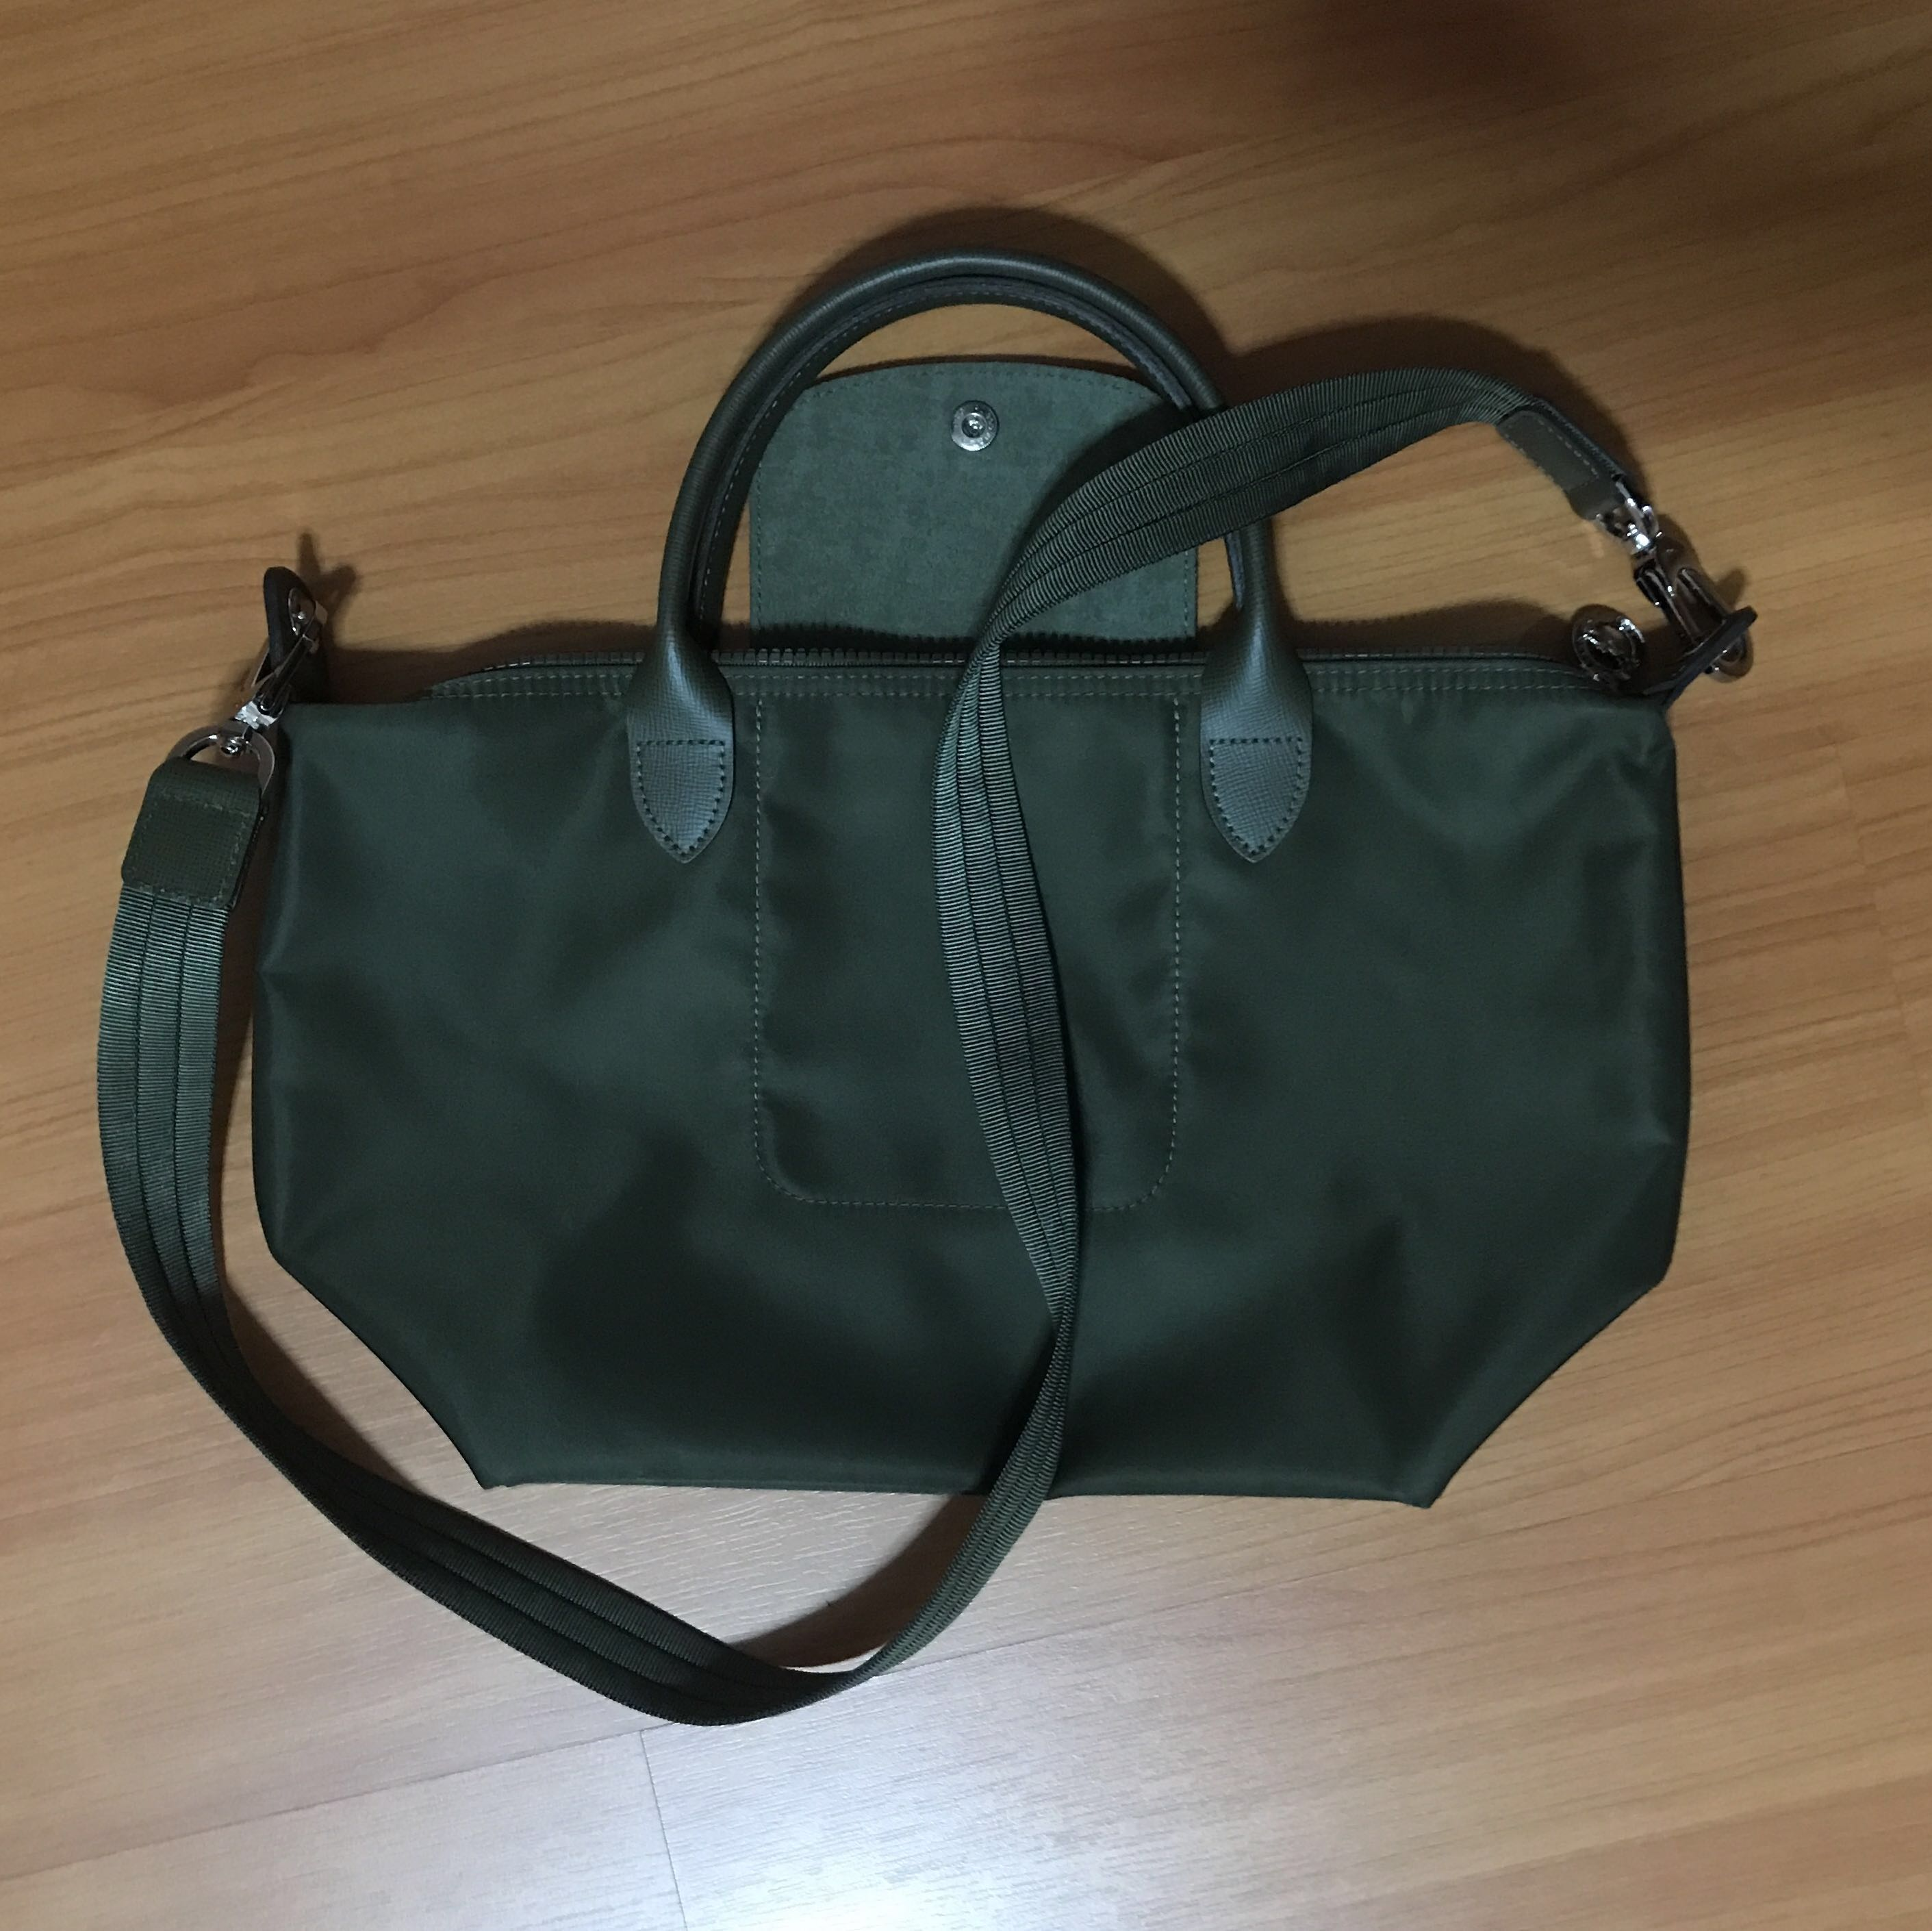 9088fb331b Long Champ Le Pliage Neo Small Olive Green, Women's Fashion, Bags &  Wallets, Handbags on Carousell